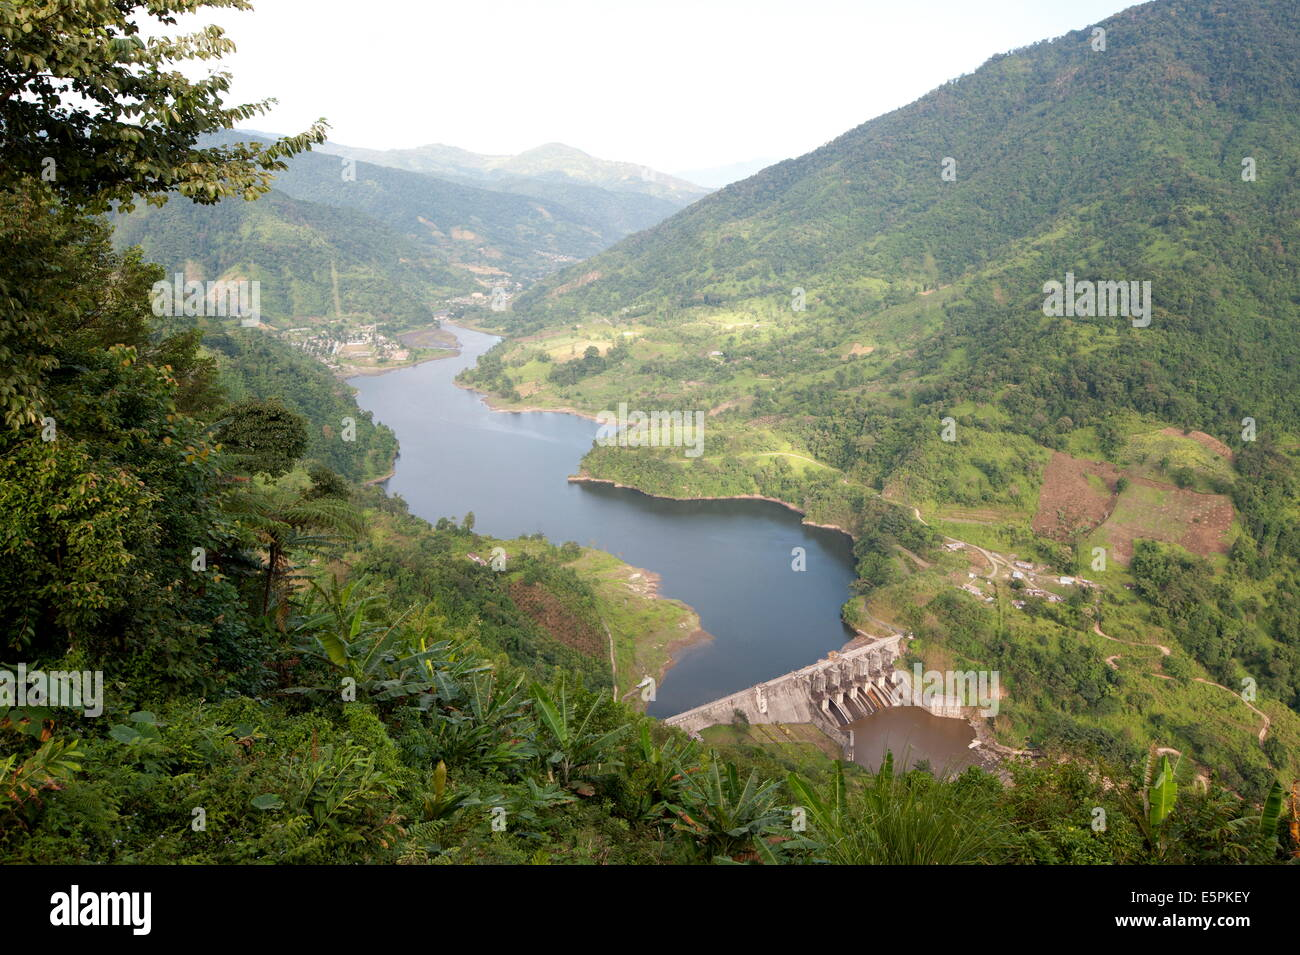 Newly constructed hydro electric dam in the hilly Kimin district of Arunachal Pradesh, India, Asia Stock Photo